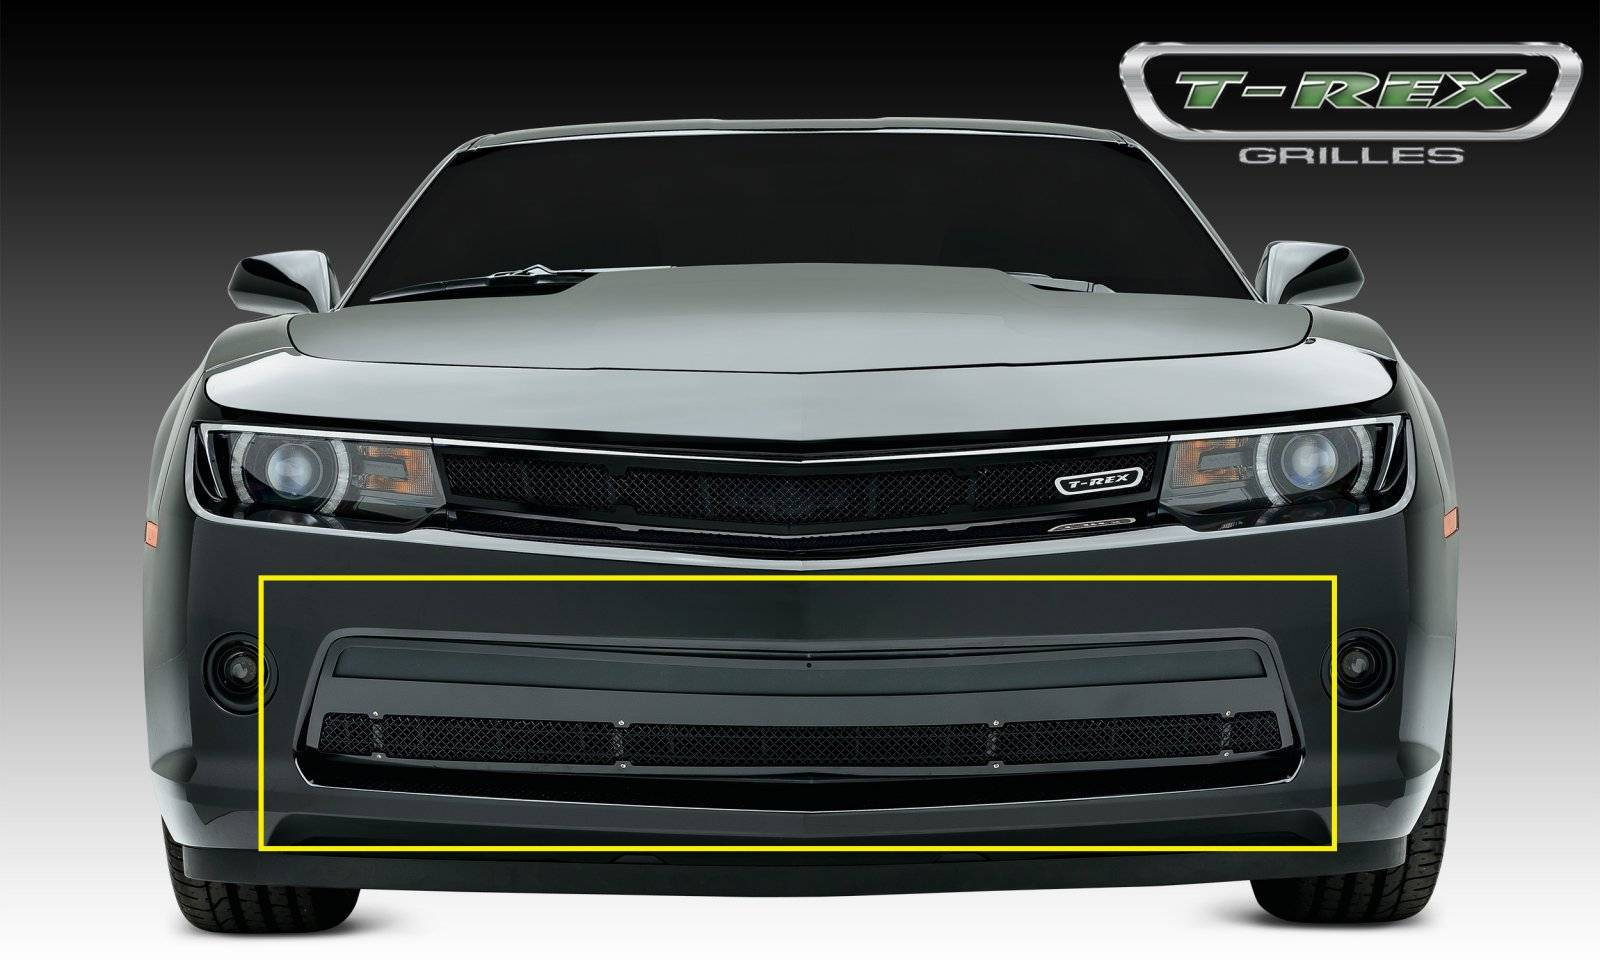 Chevrolet Camaro RS Upper Class, Formed Mesh, Bumper Grille, Overlay, 1 Pc, Black Powdercoated Mild Steel - Pt # 52031